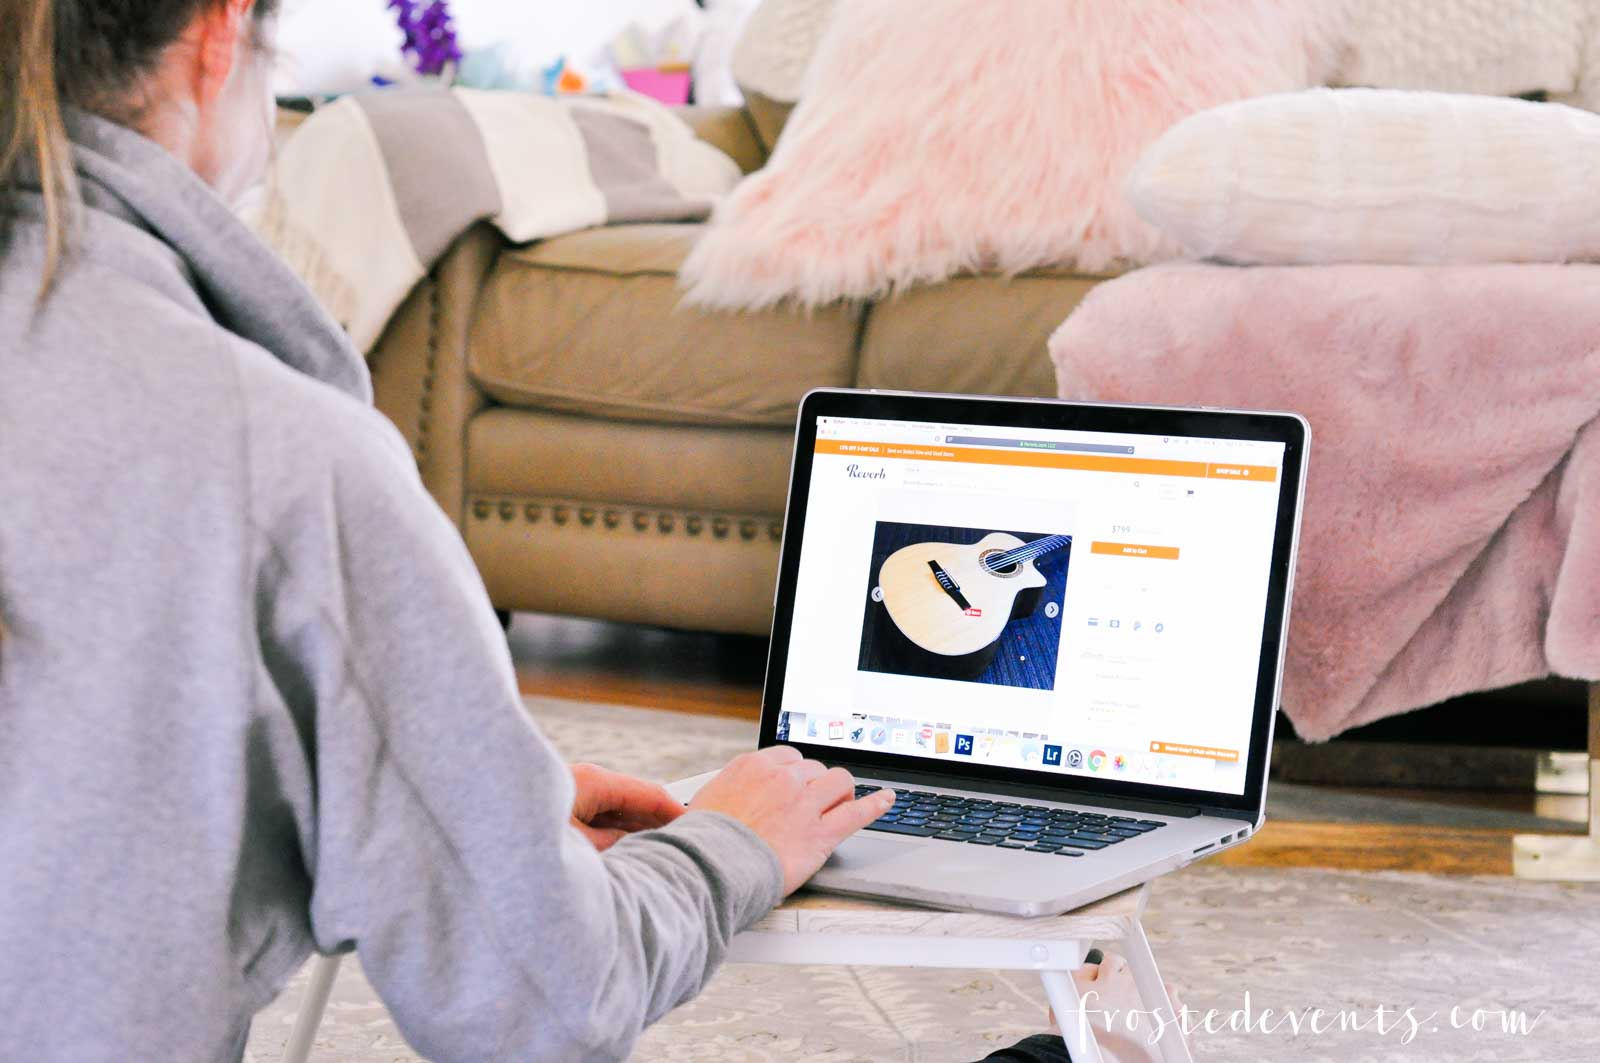 Easy Loans Affirm Makes It Simple to Afford to Start a New Hobby, Take a Vacation or Buy Yourself That Designer Purse via Misty Nelson @frostedevents frostedmoms.com